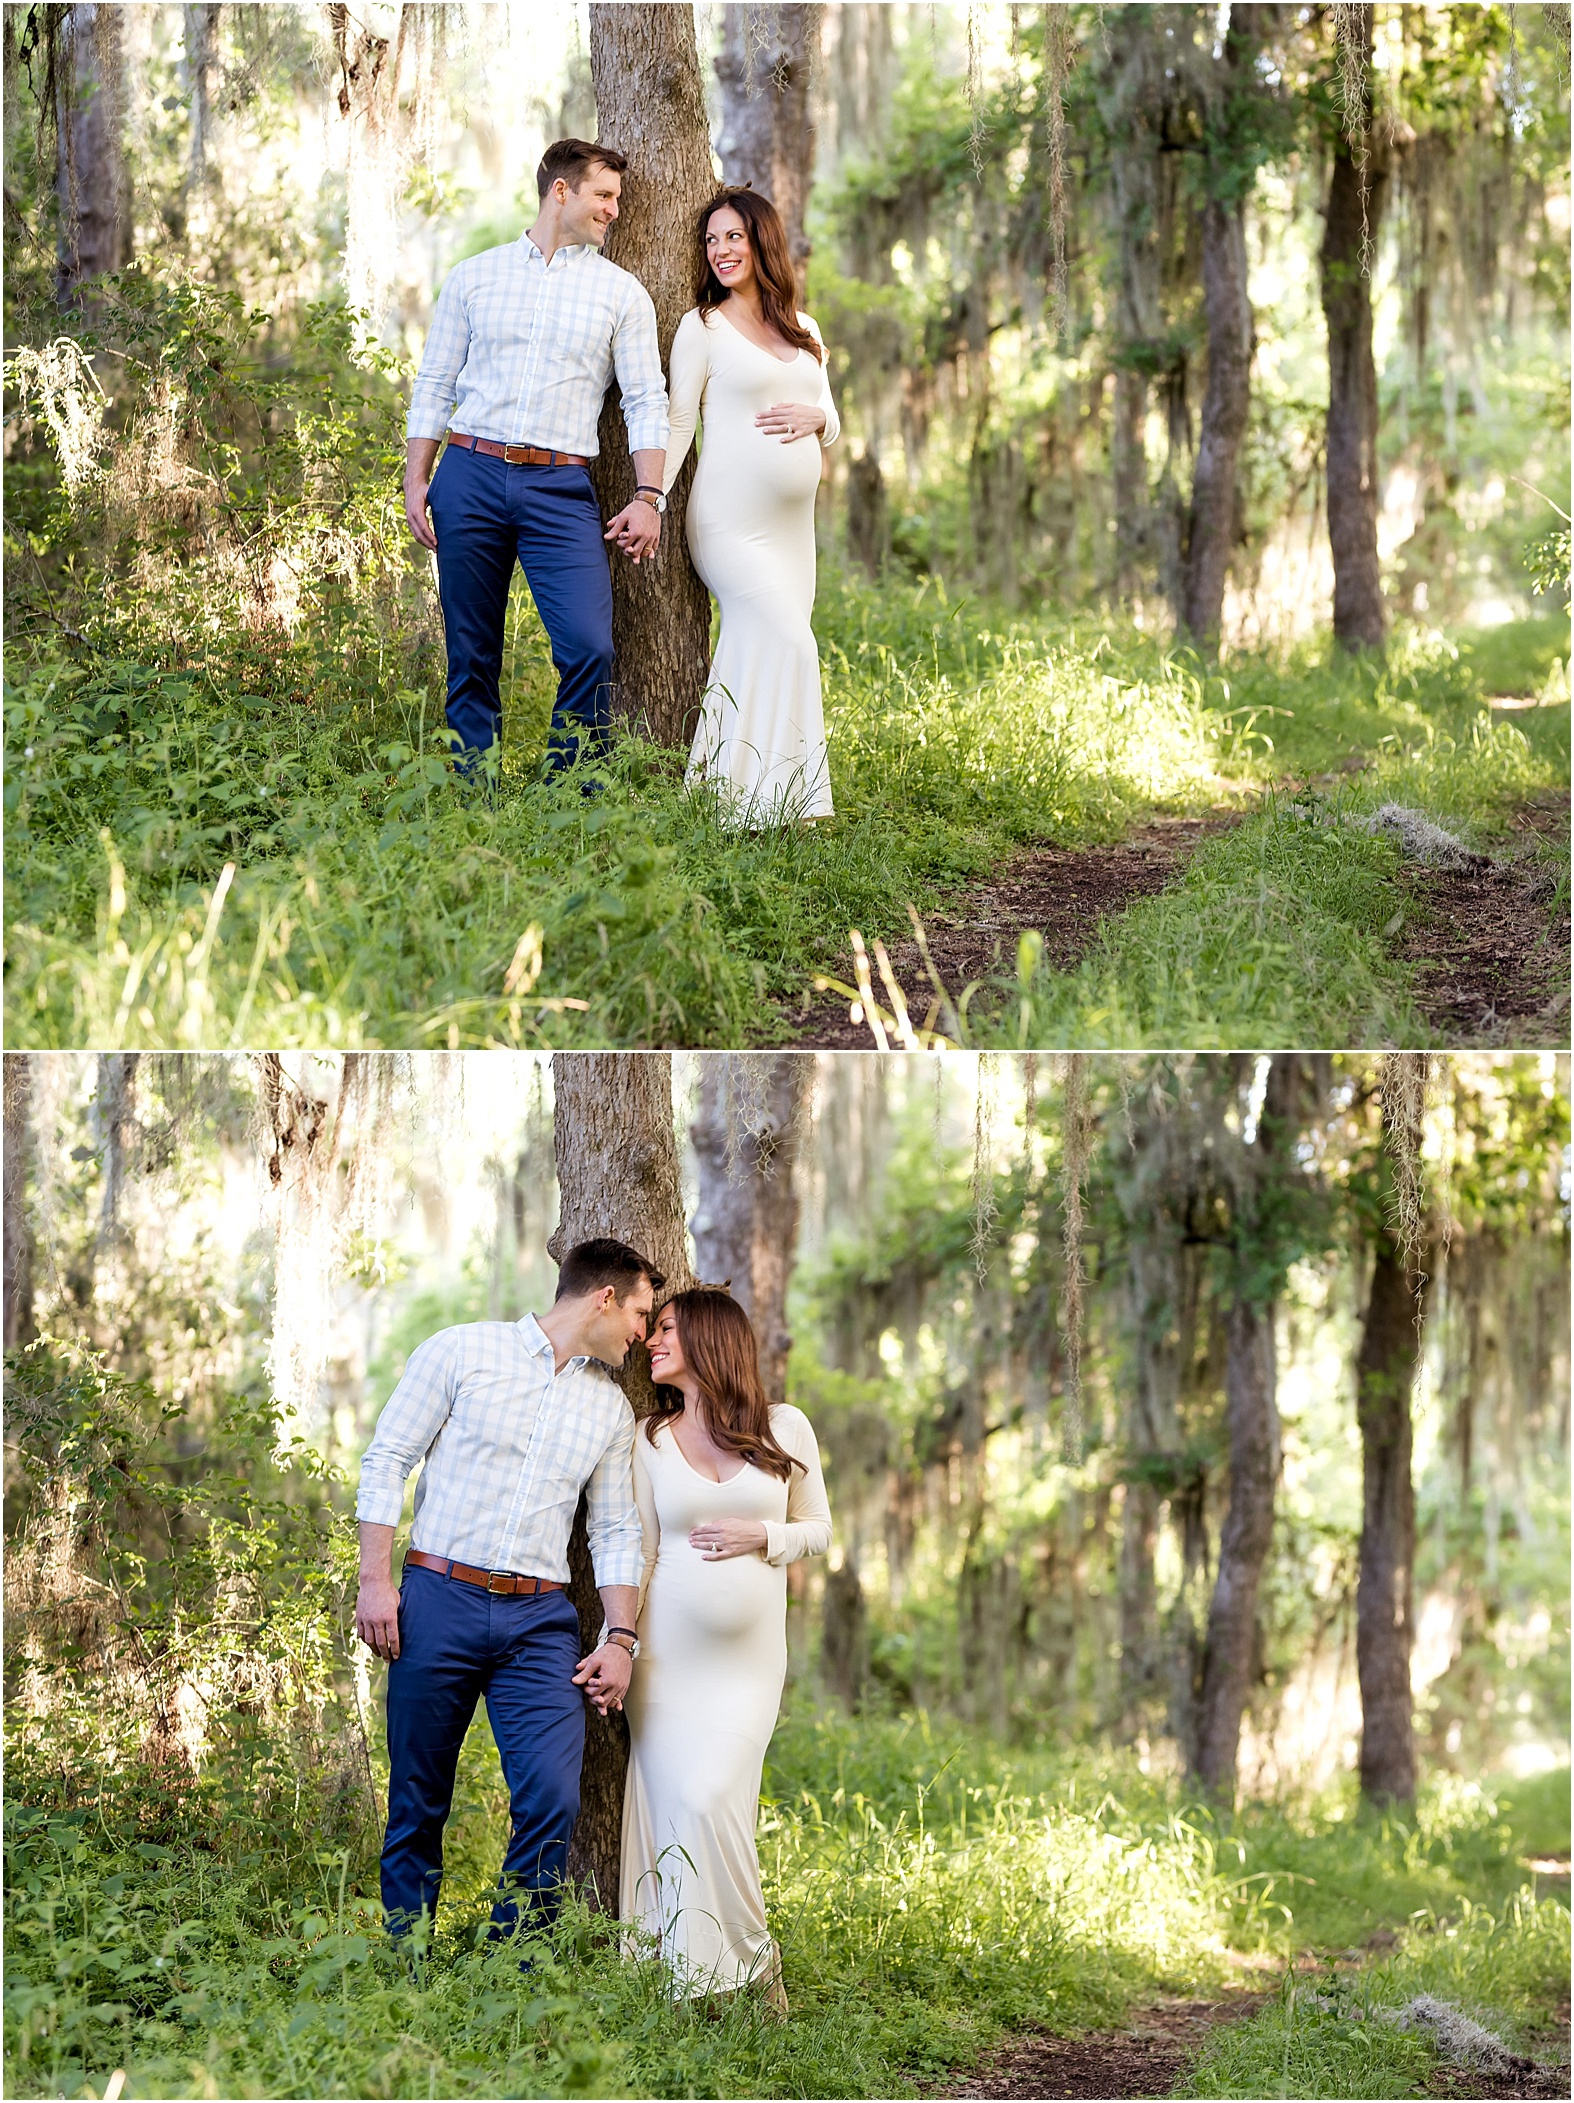 Houston, TX Outdoor Maternity Session with Golden Light, Mossy Trees, Texas Bluebonnets, and Summer Sunlight. Expectant couple looks stunning under a canopy of moss with beautiful golden sunlight.